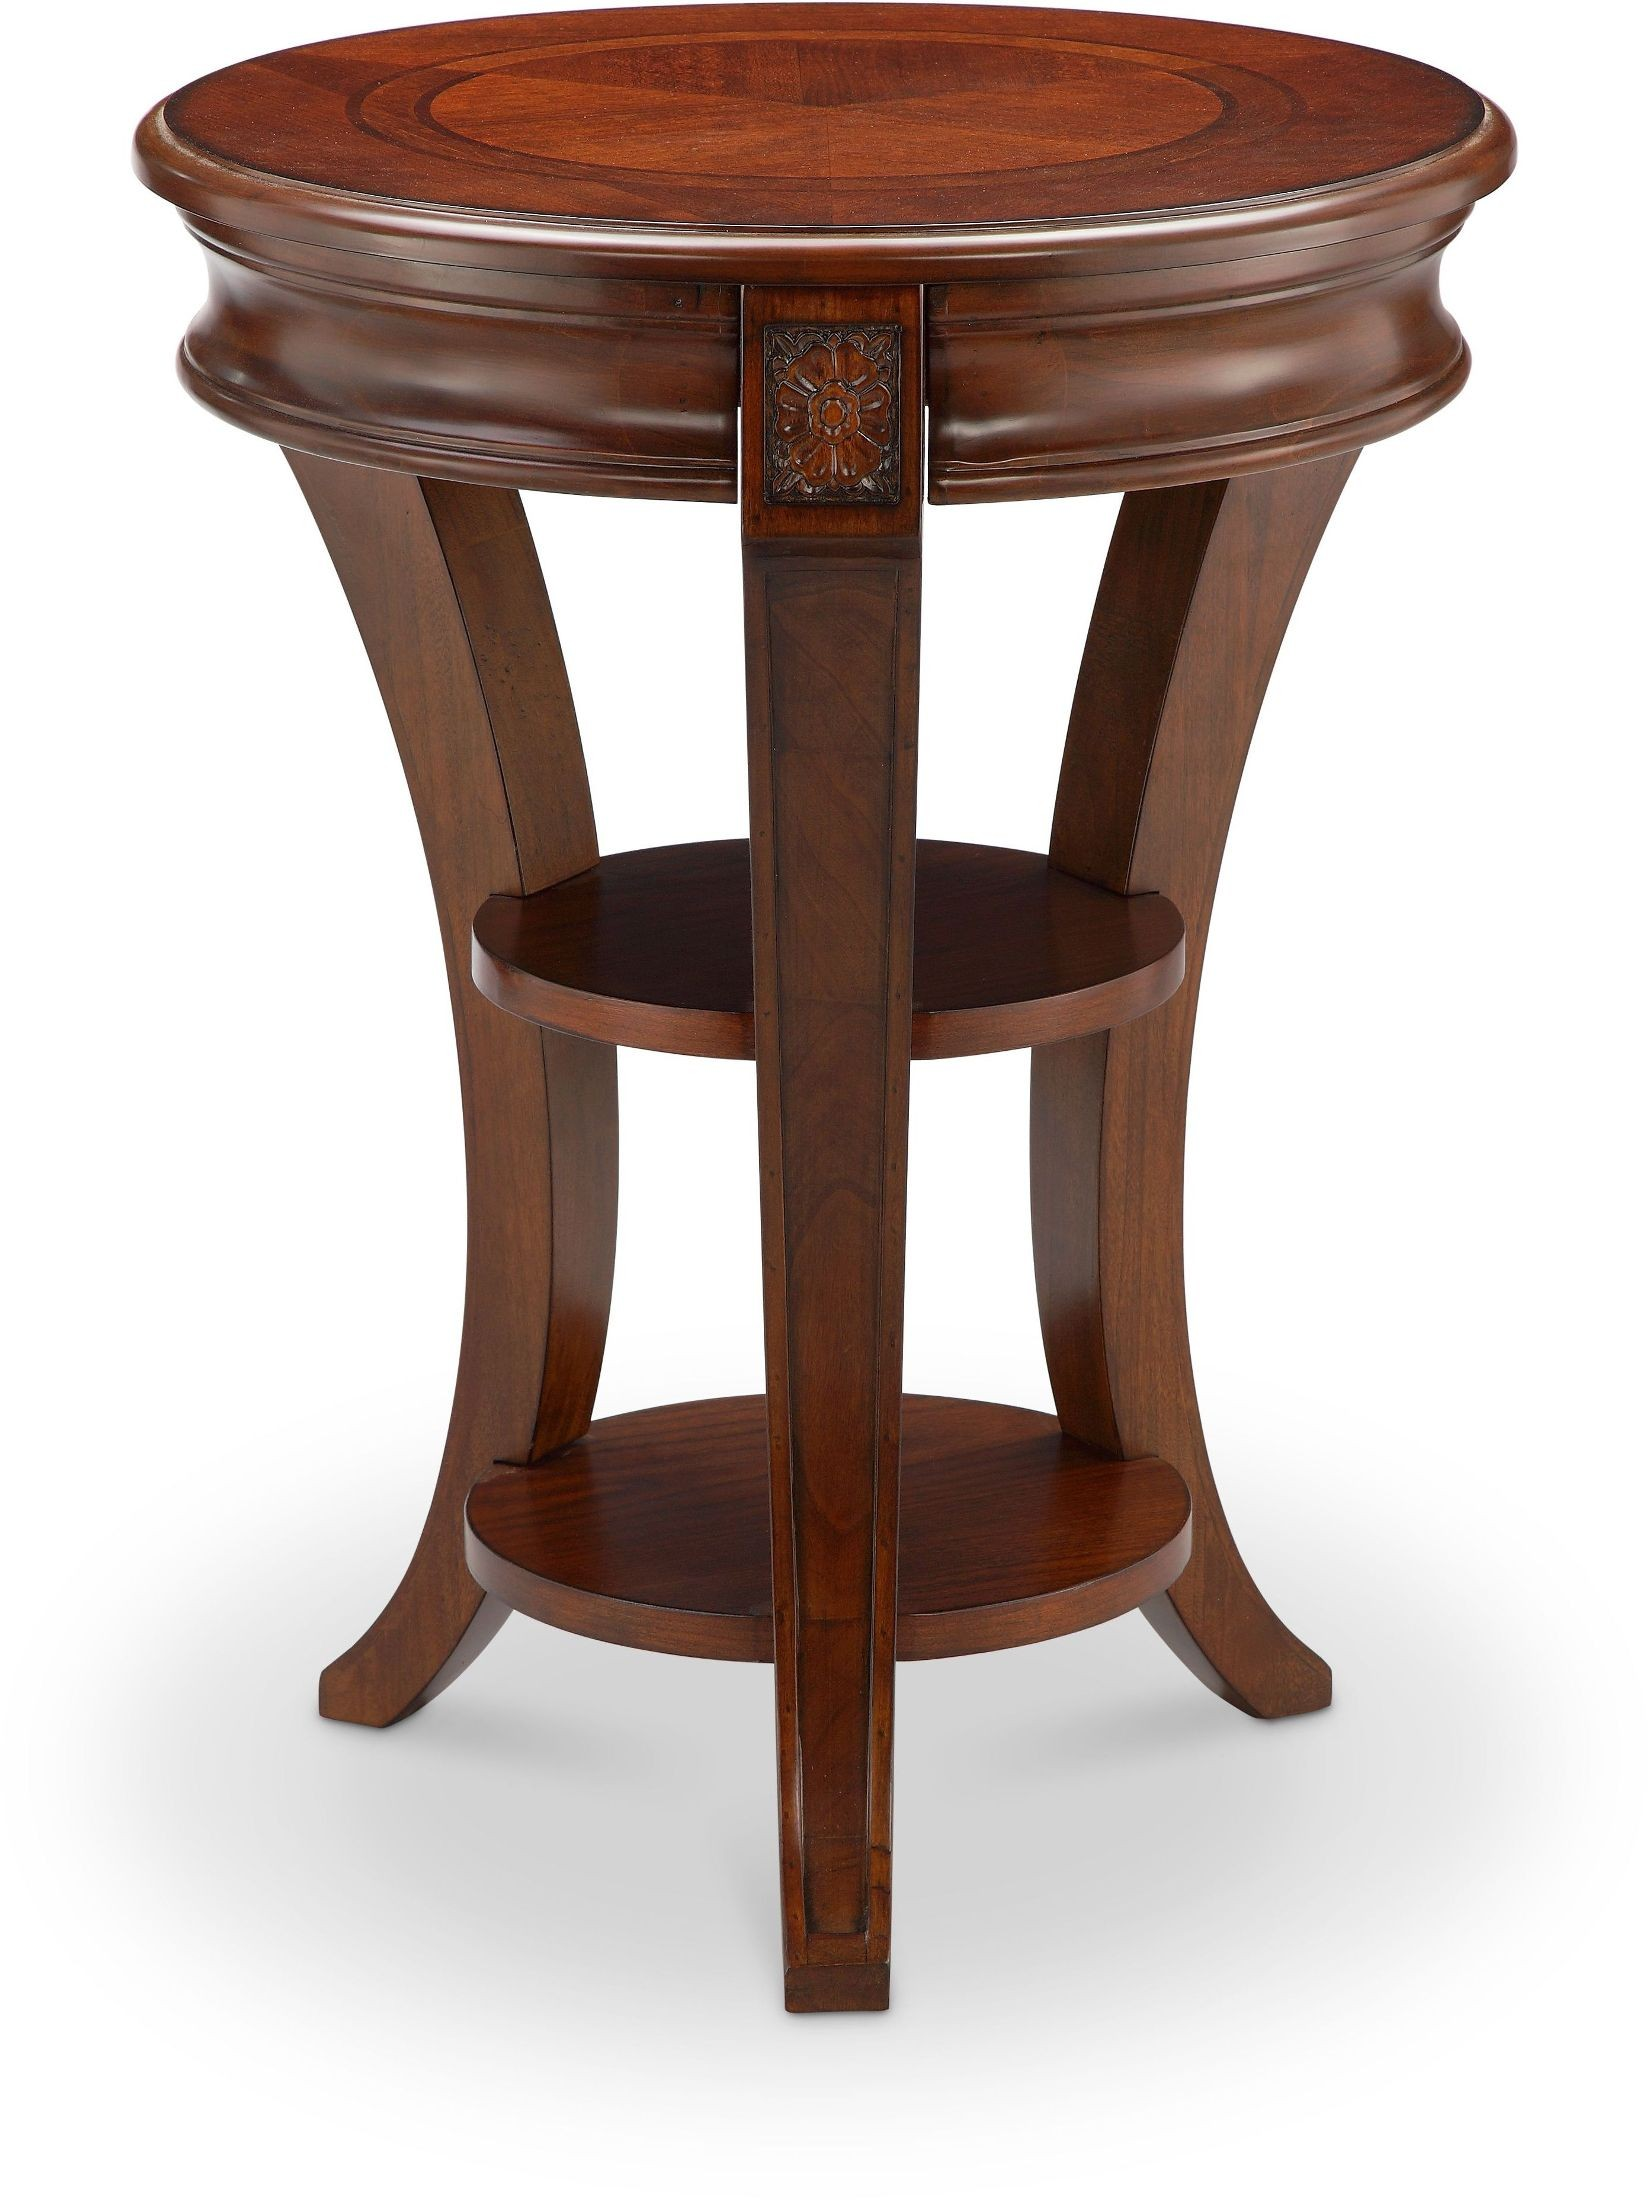 Winslet Cherry Round Accent Table from Magnussen Home